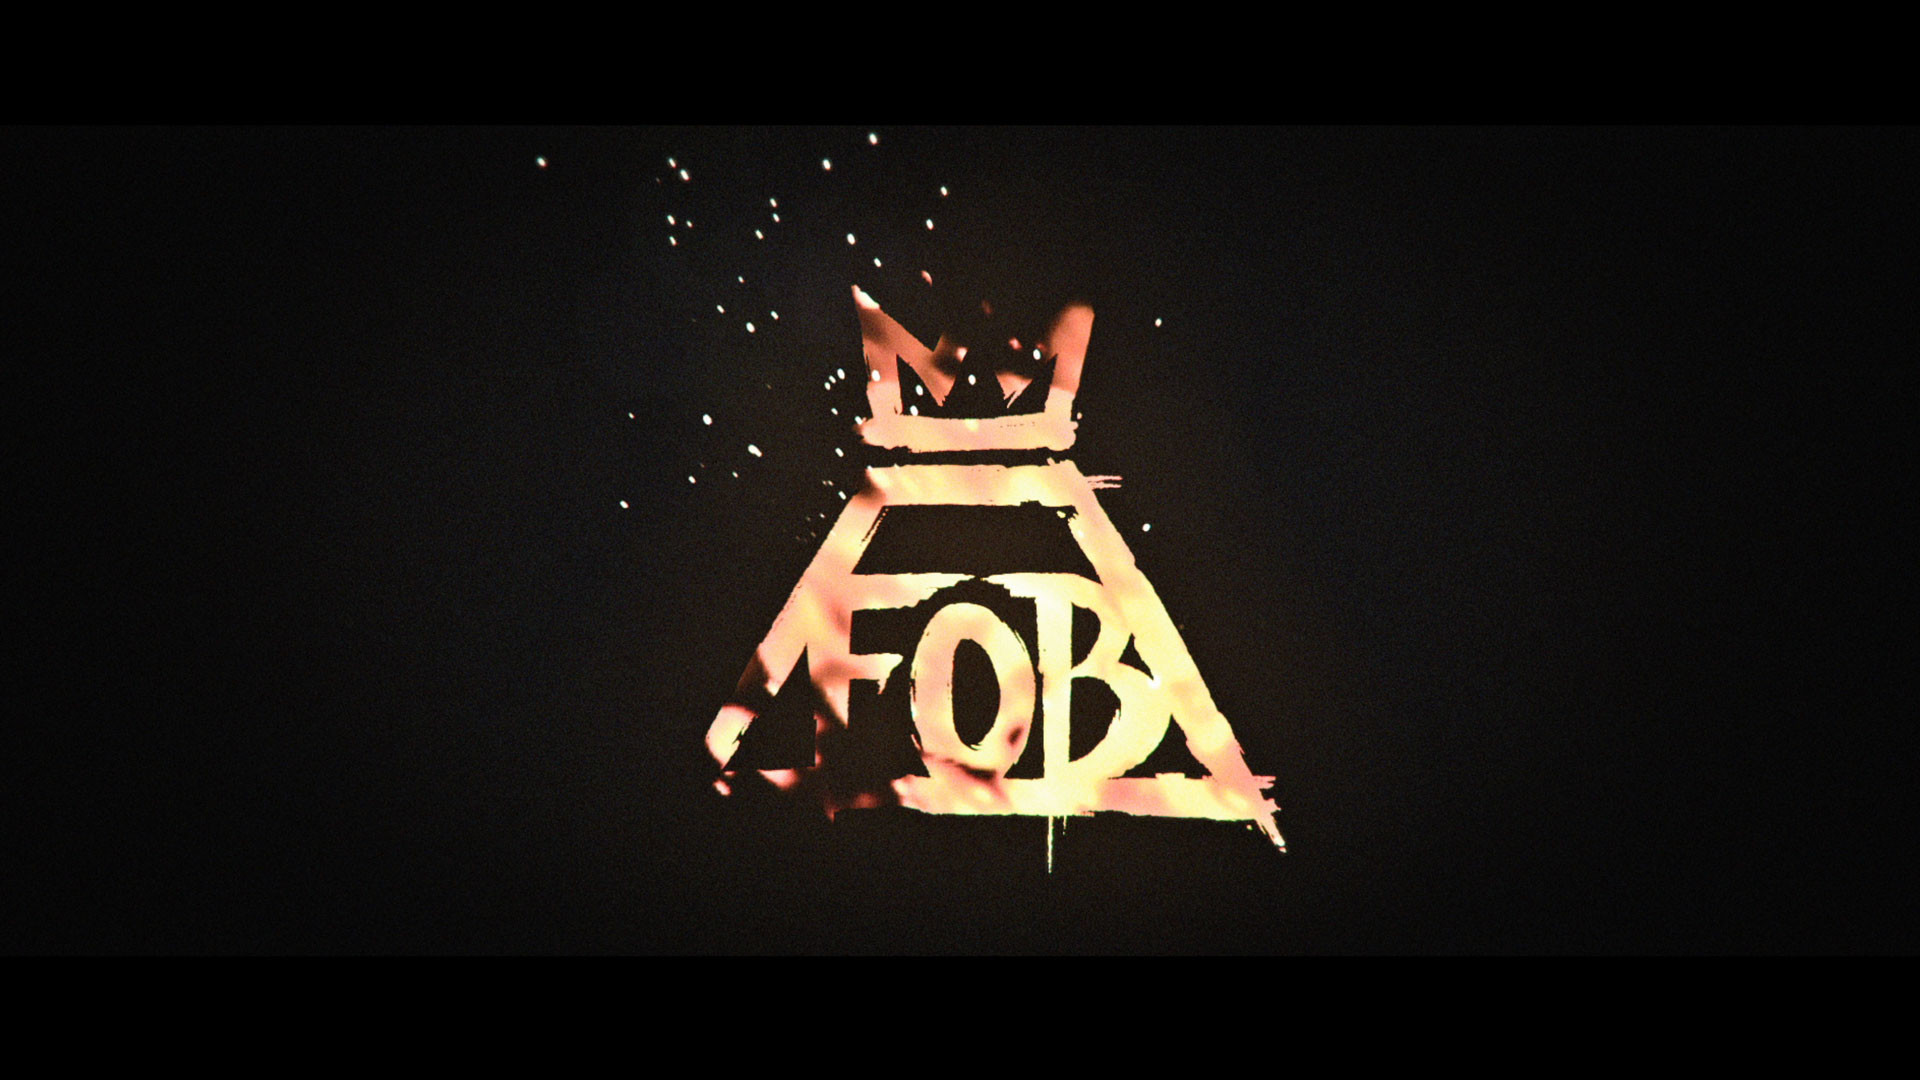 Res: 1920x1080, HDQ Beautiful Fall Out Boy Logo Images & Wallpapers (Danyell Tapscott, 28/03